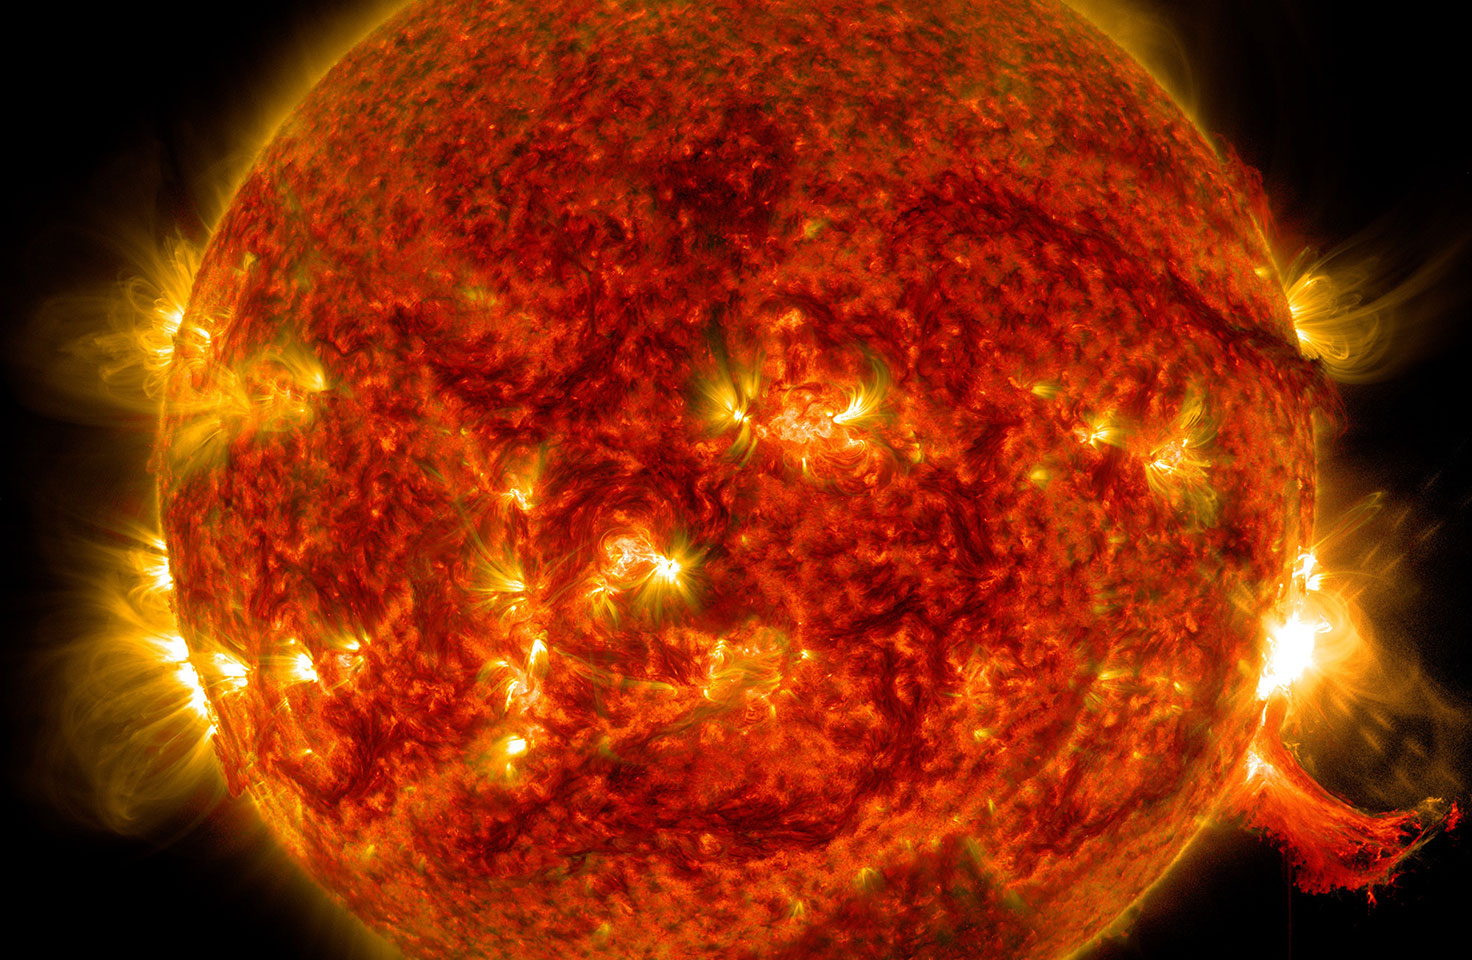 Image of solar flare